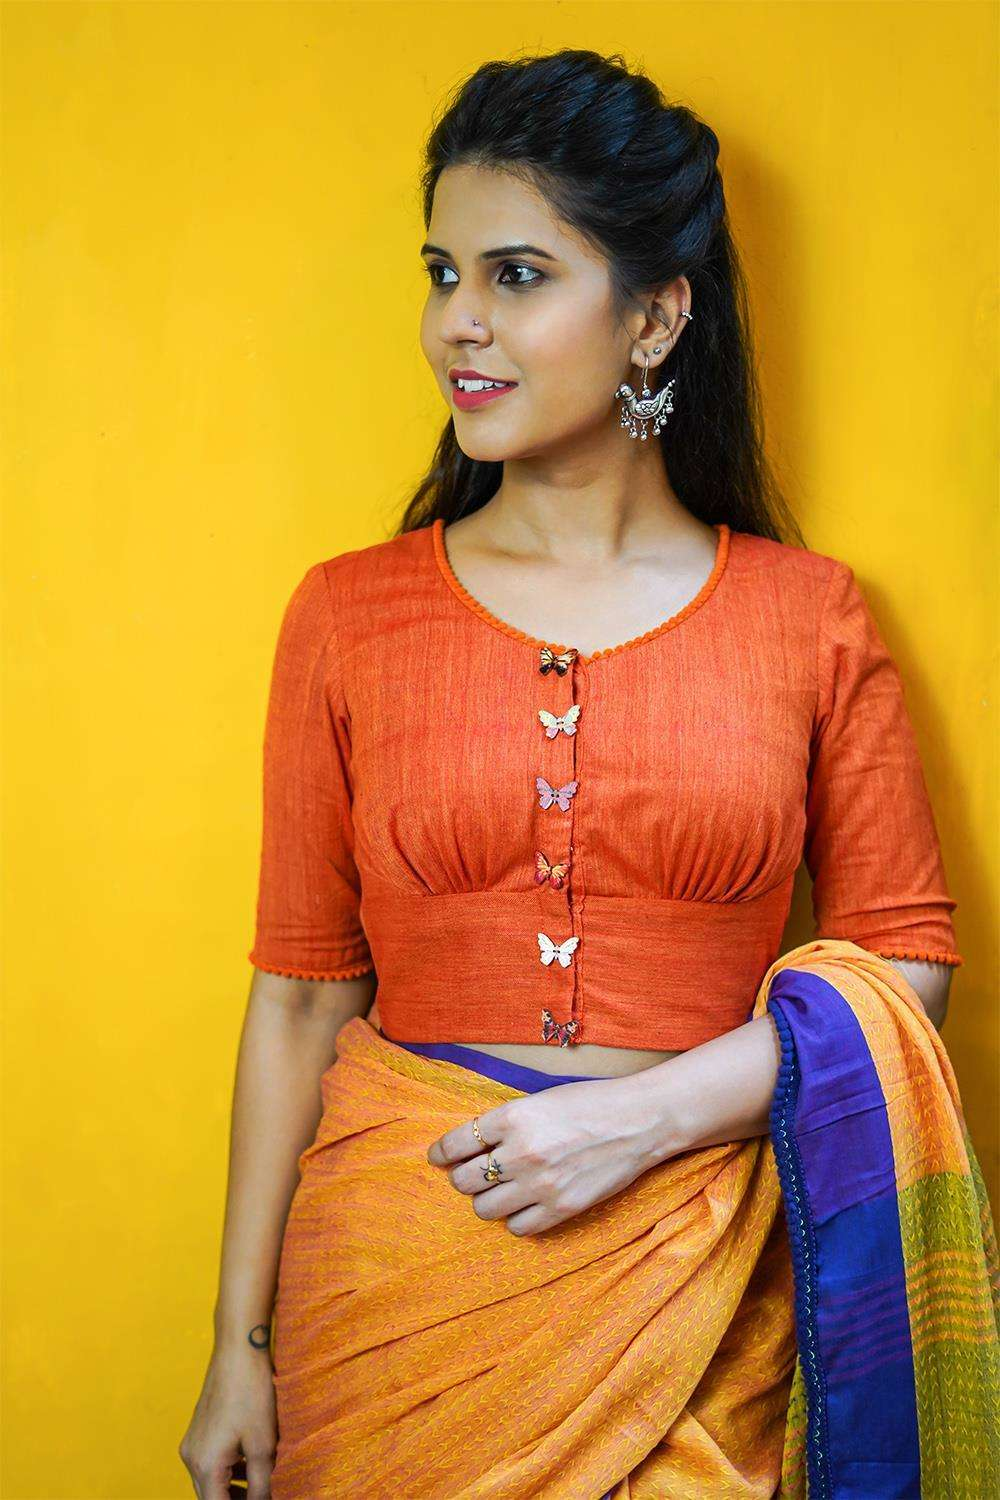 Orange khadi rounded V neck blouse with orange pom pom edging - House of Blouse